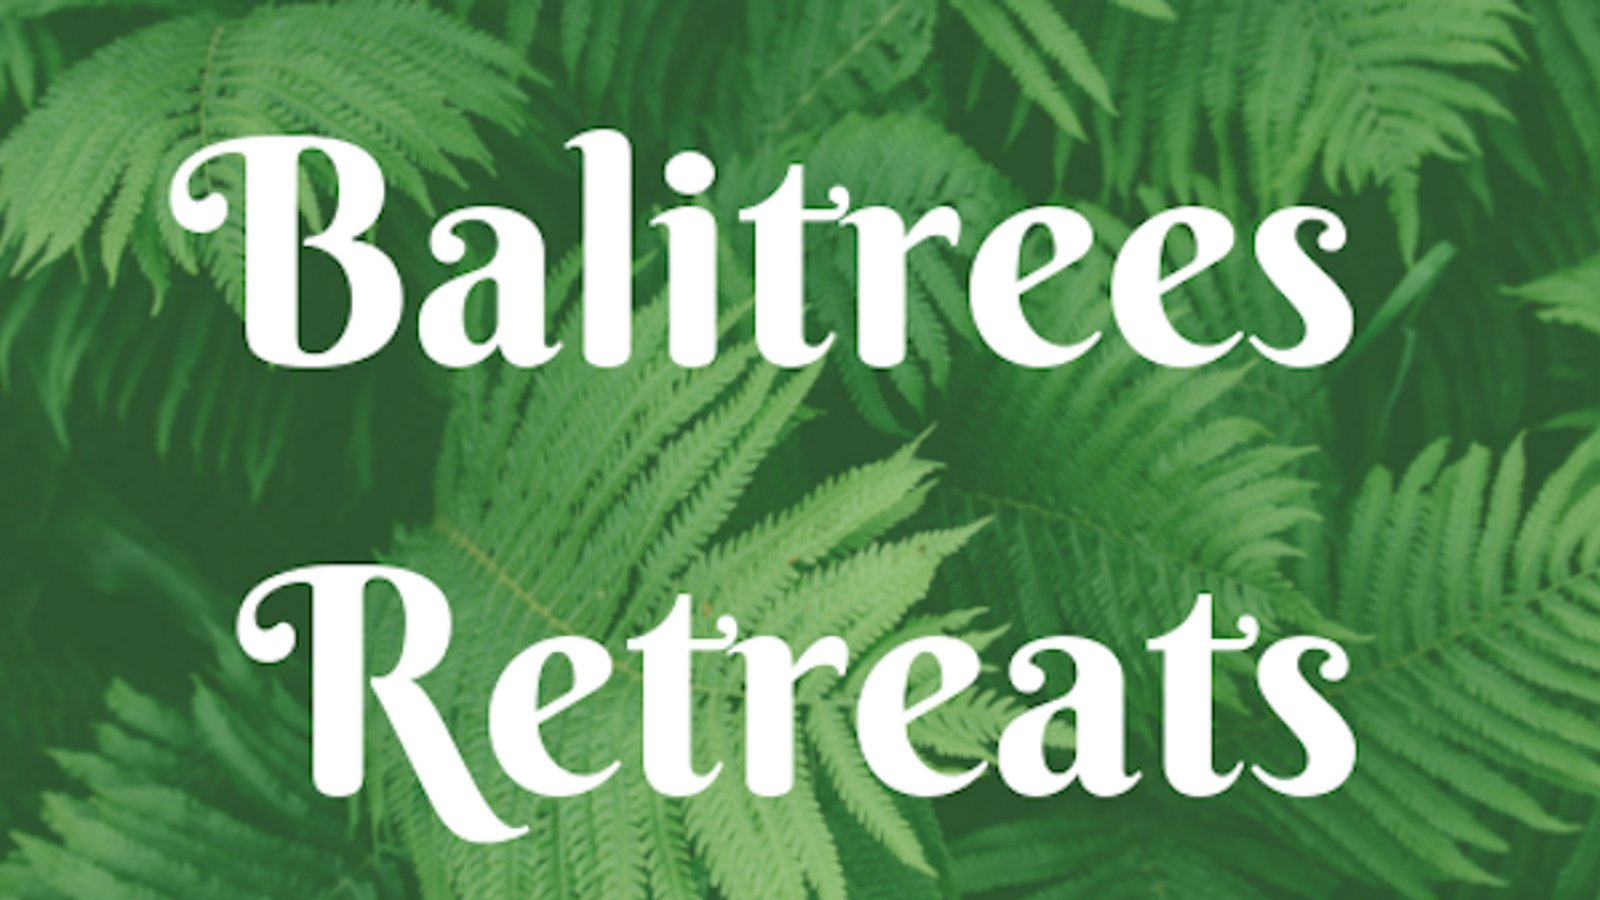 Stella Forest Ete 2018 balitrees retreats reviews, profile & contact